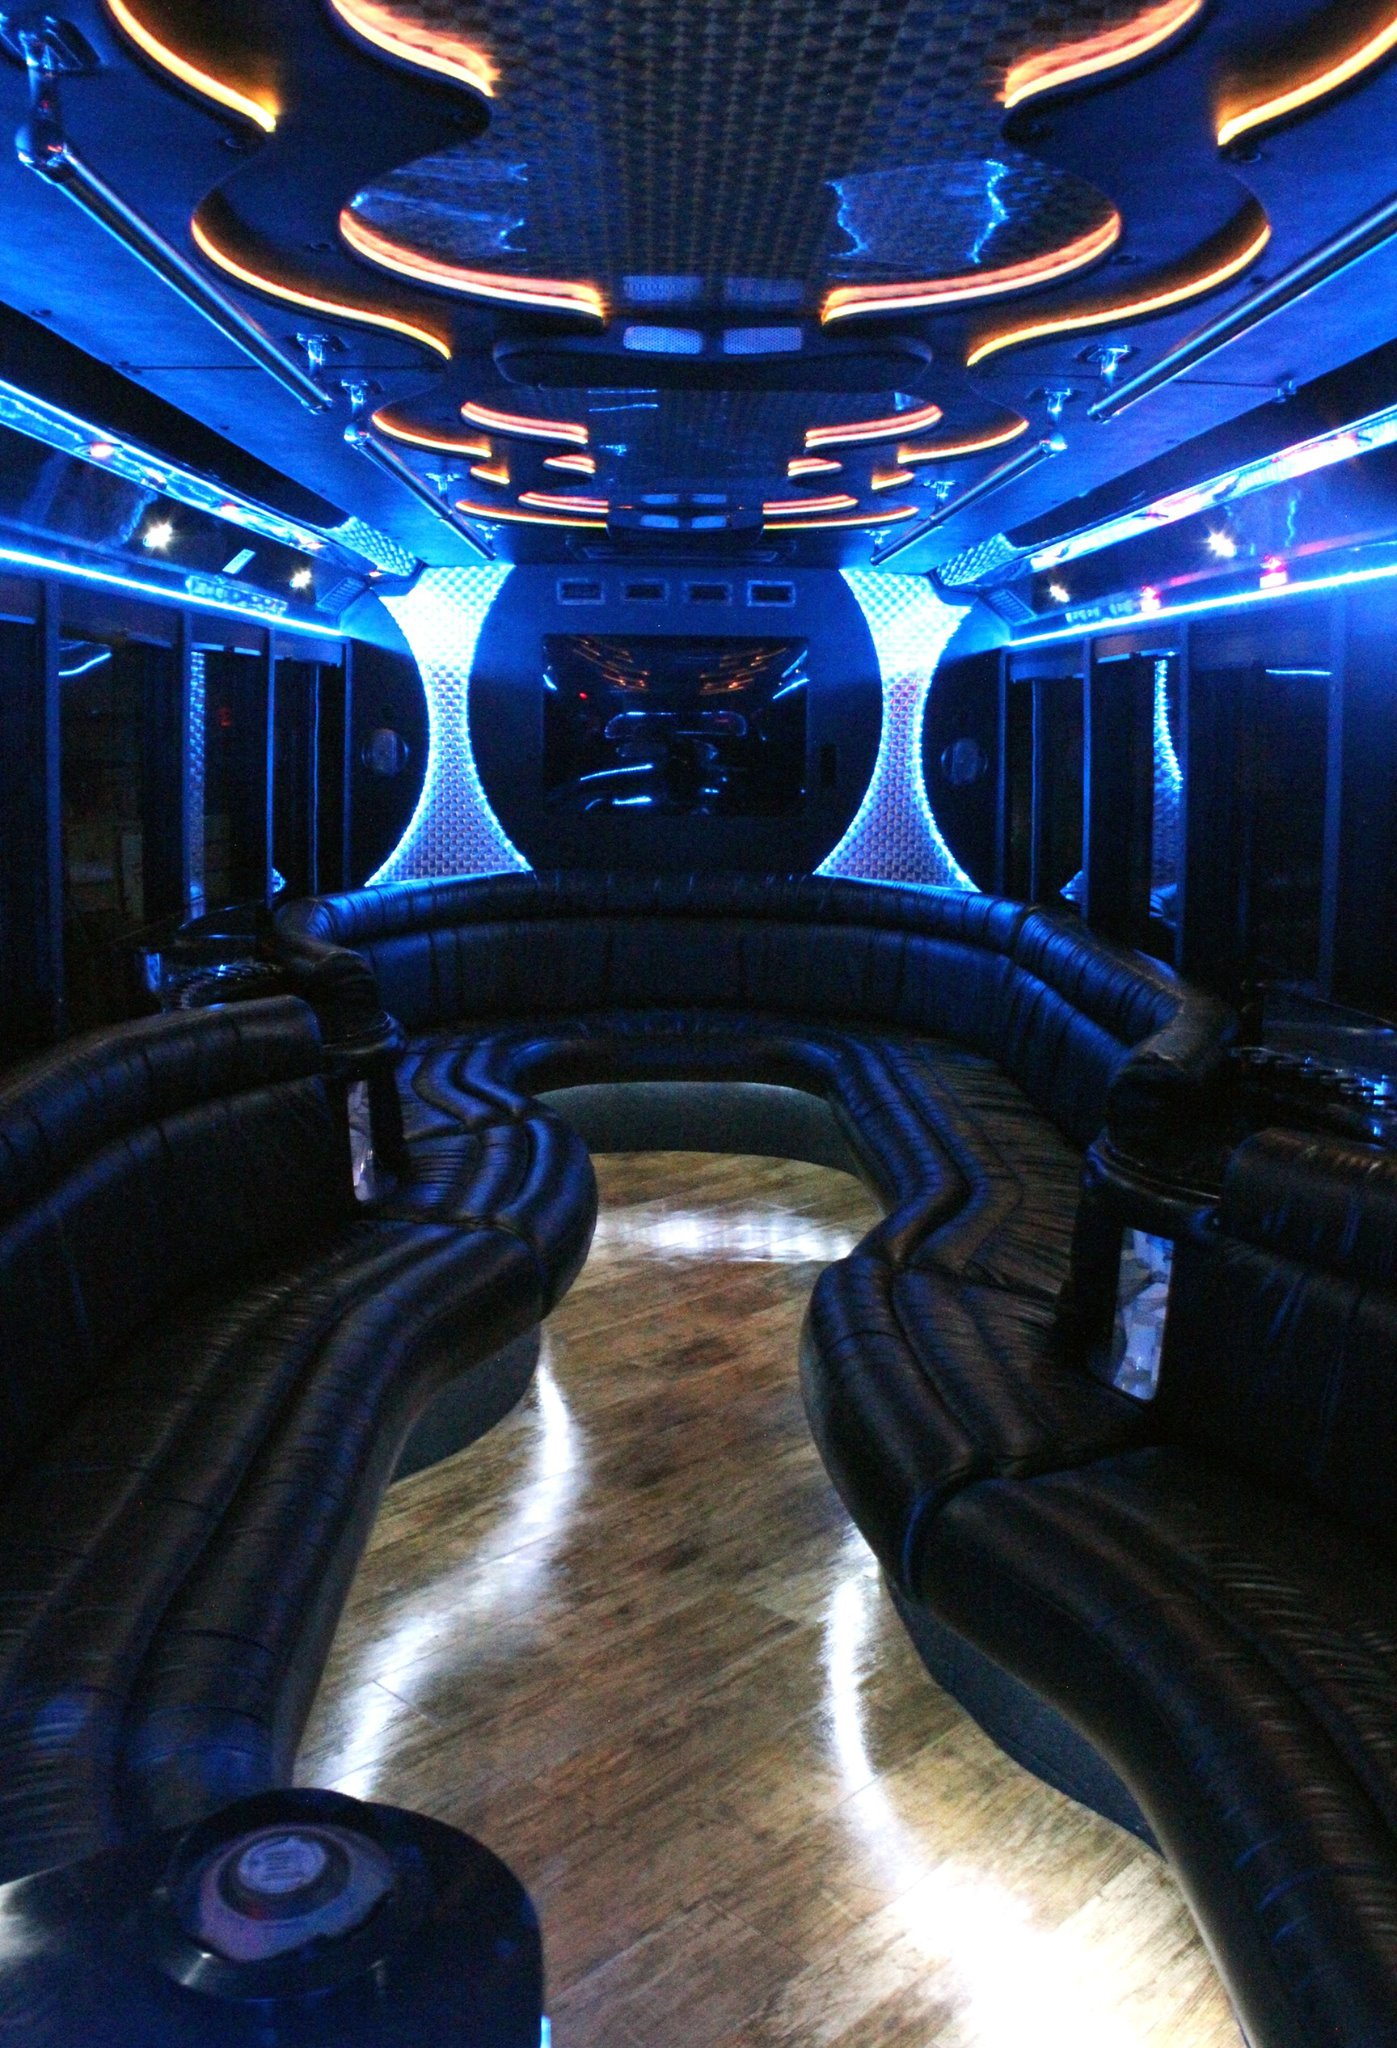 26-2 Passenger Luxury Limo Bus Interior 2